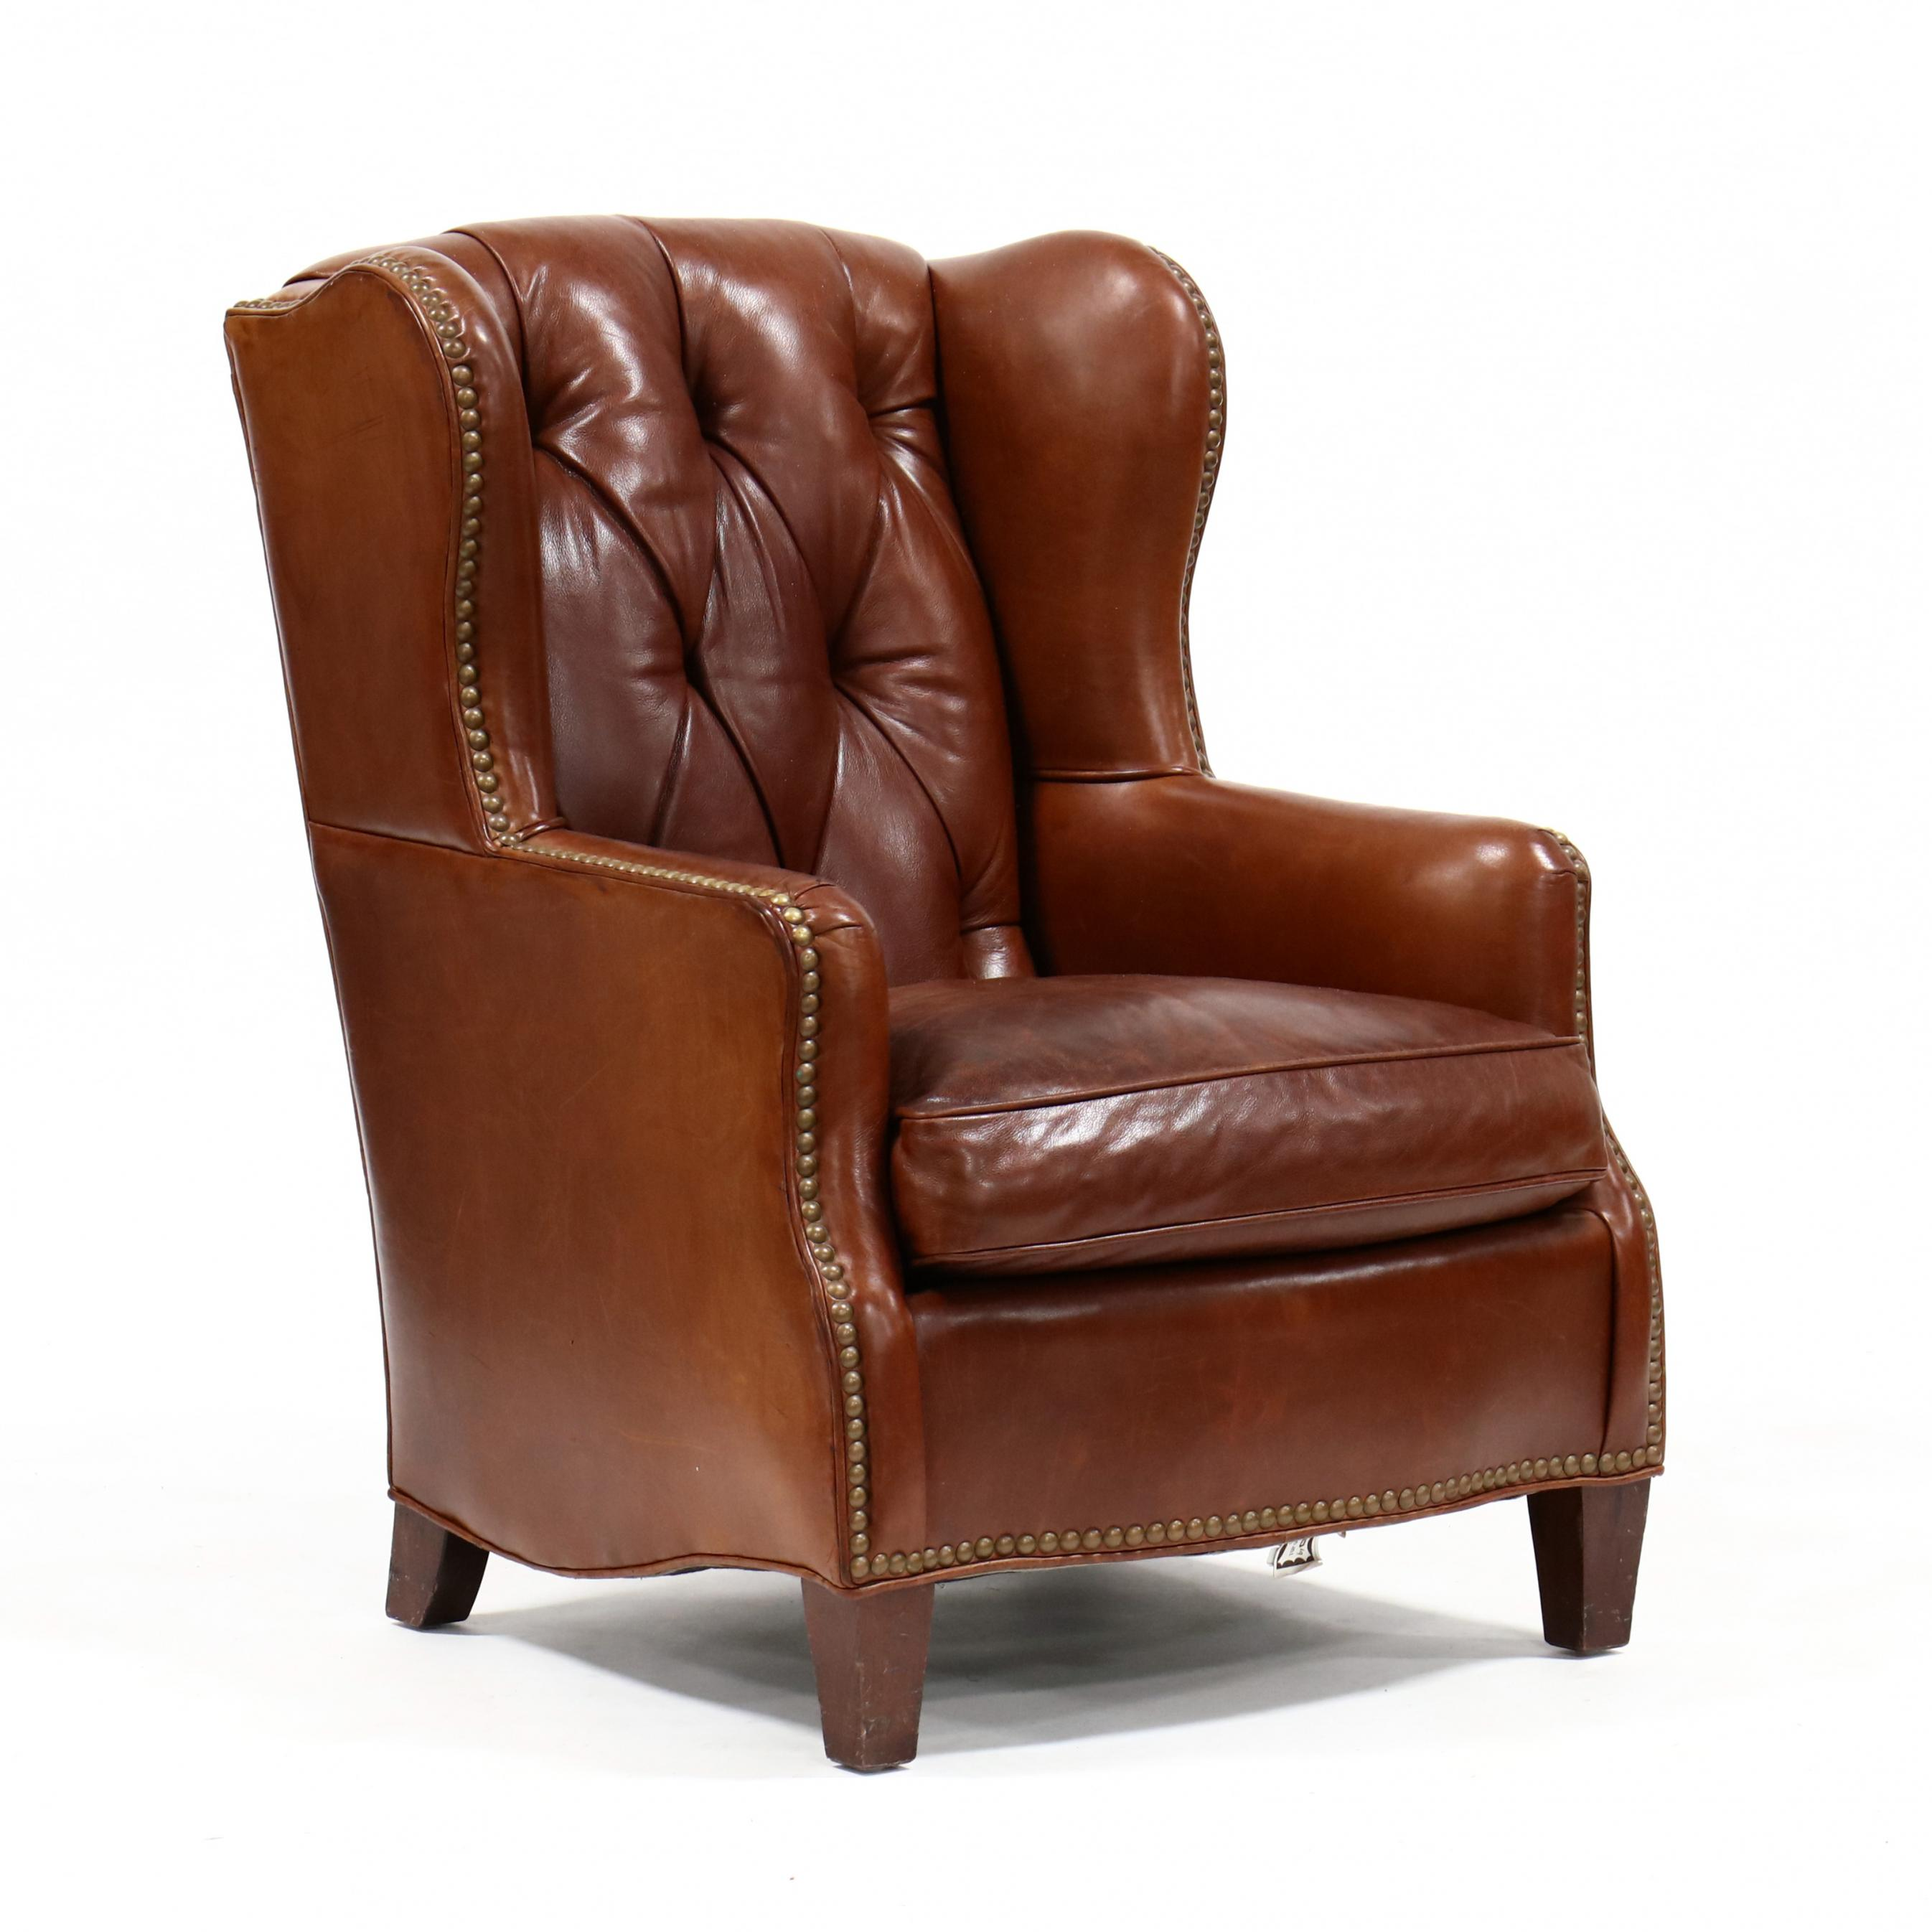 classic-leather-upholstered-wing-back-club-chair